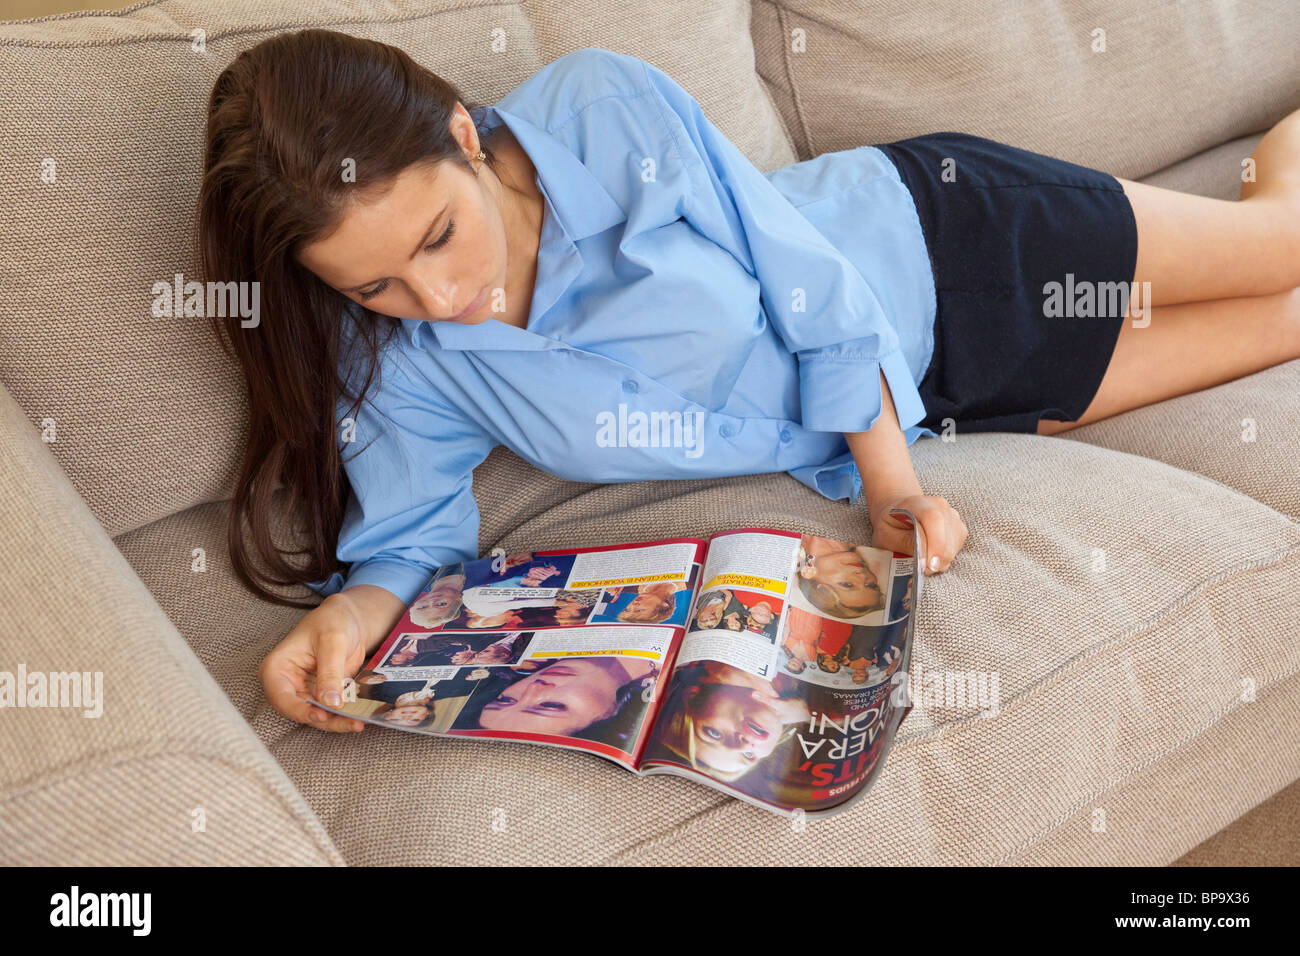 young teenage girl looking at womens lifestyle / celebrity magazine - Stock Image